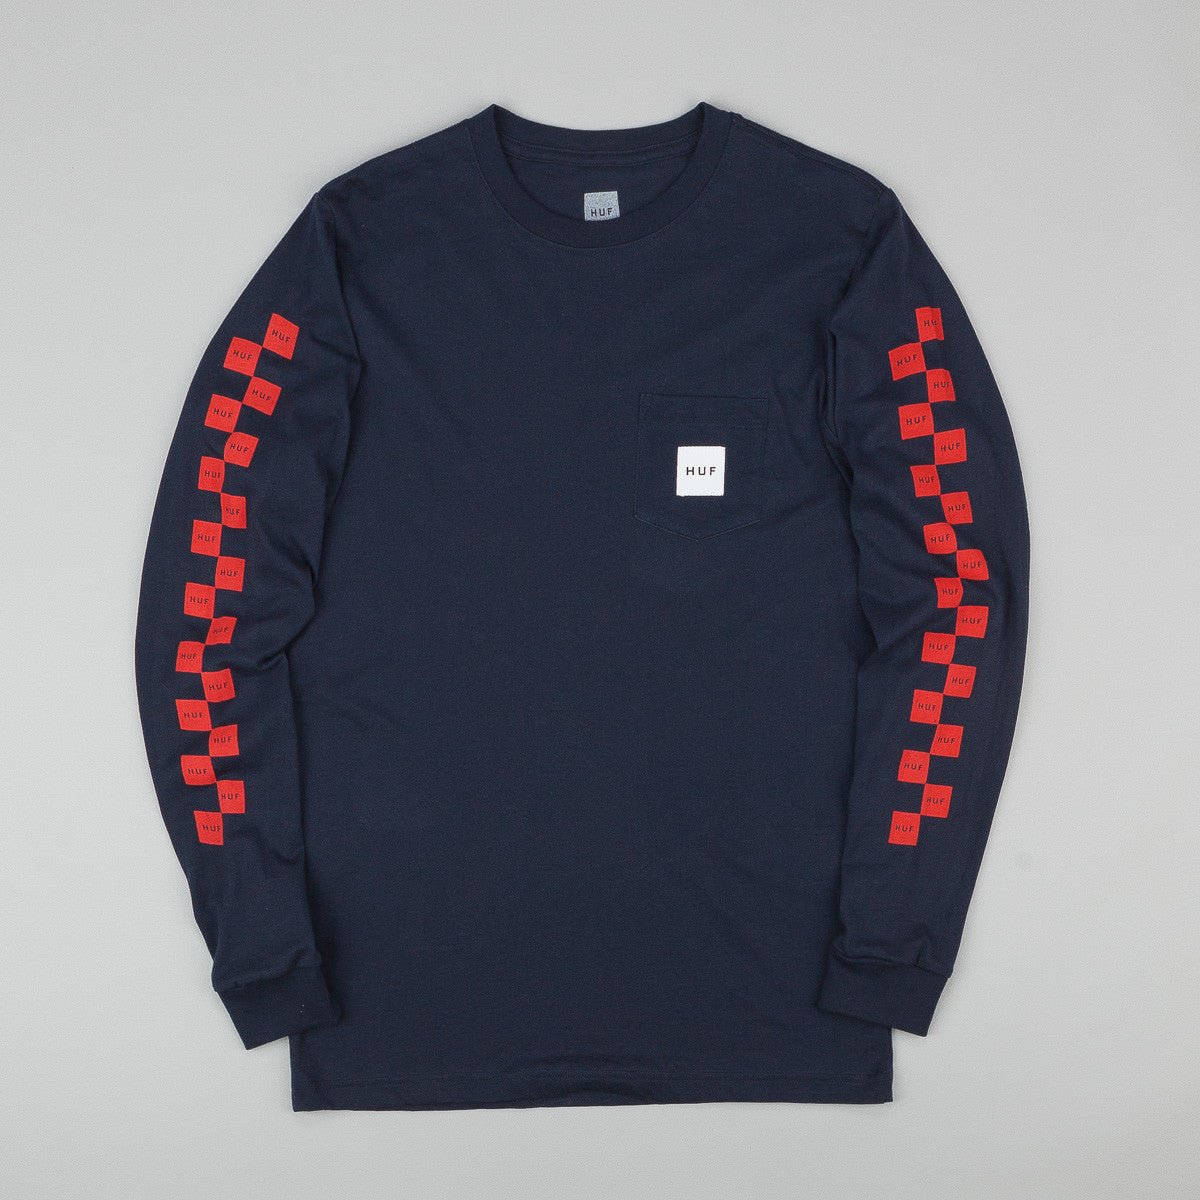 HUF Bunny Hop Long Sleeve Pocket T-Shirt - Navy